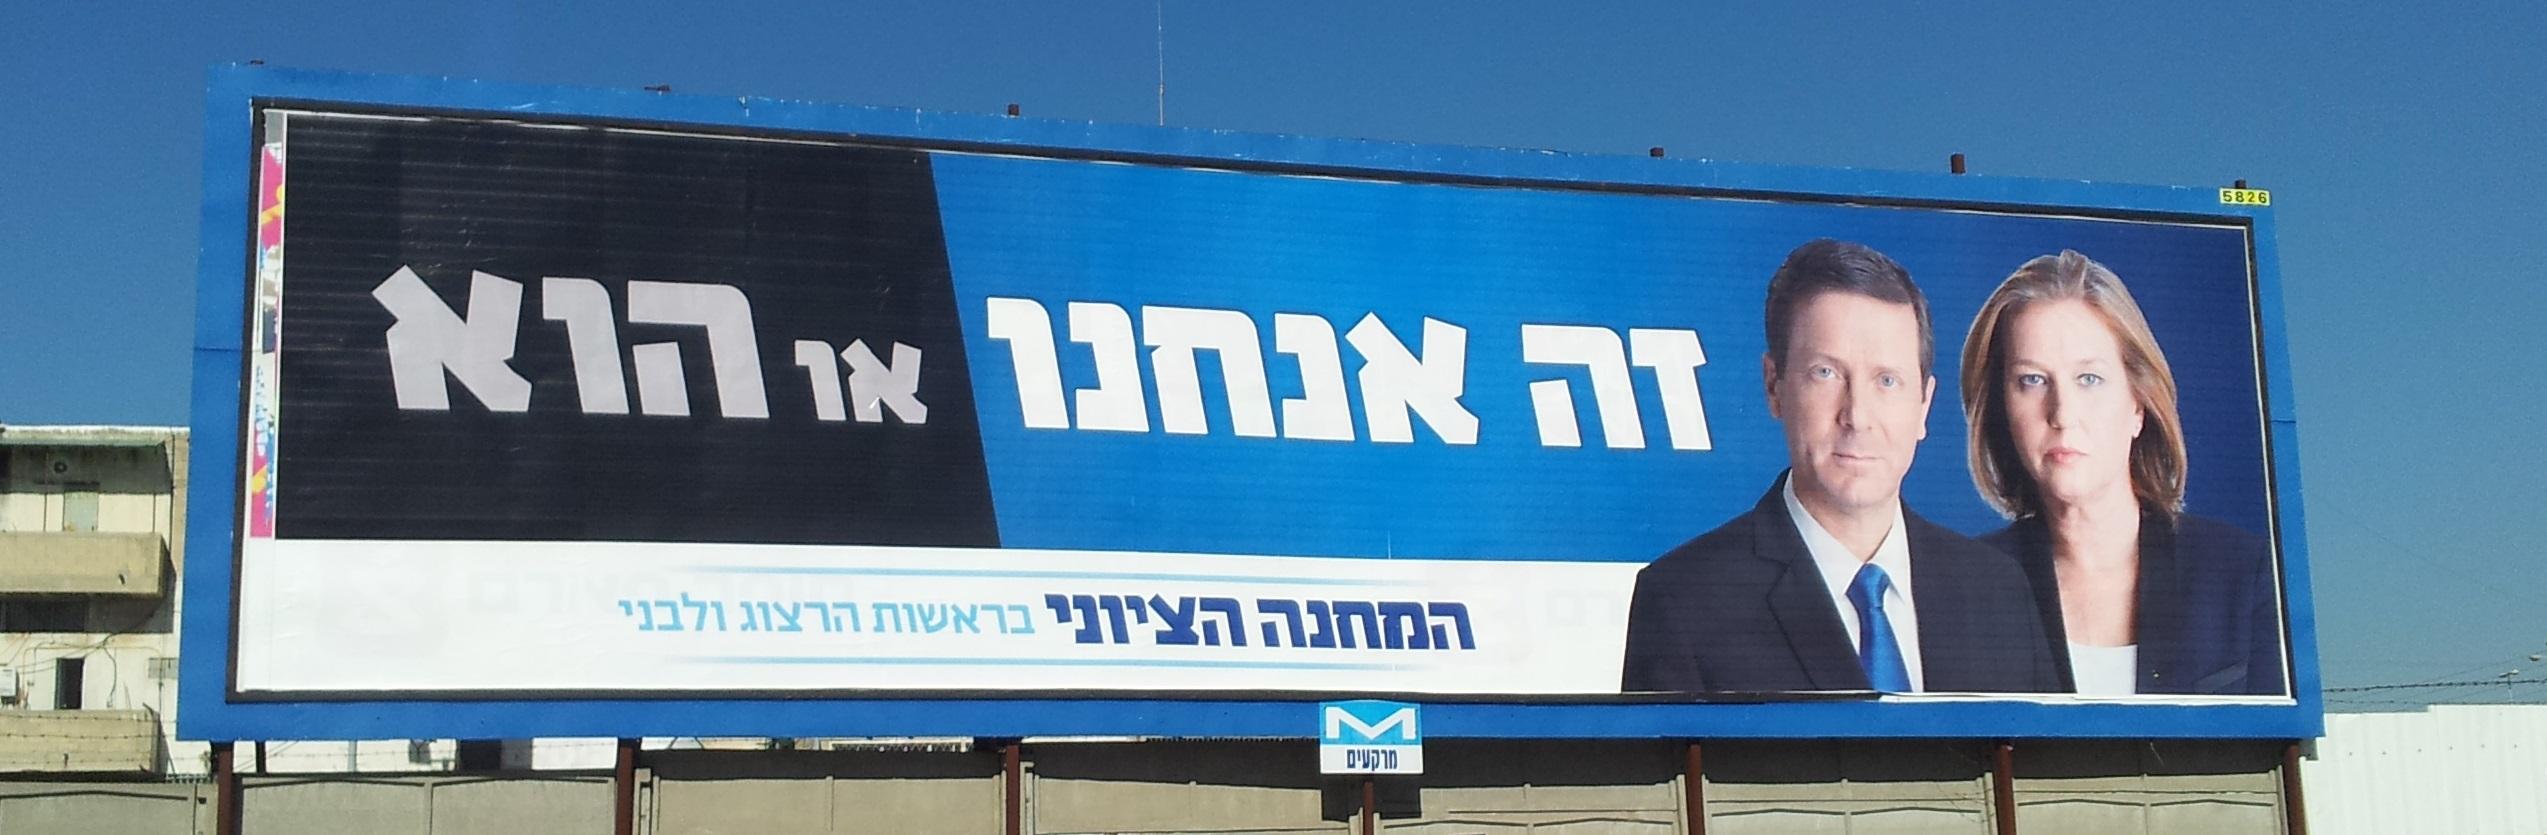 Israeli Elections 2015: Depressingly predictable, with one point of light